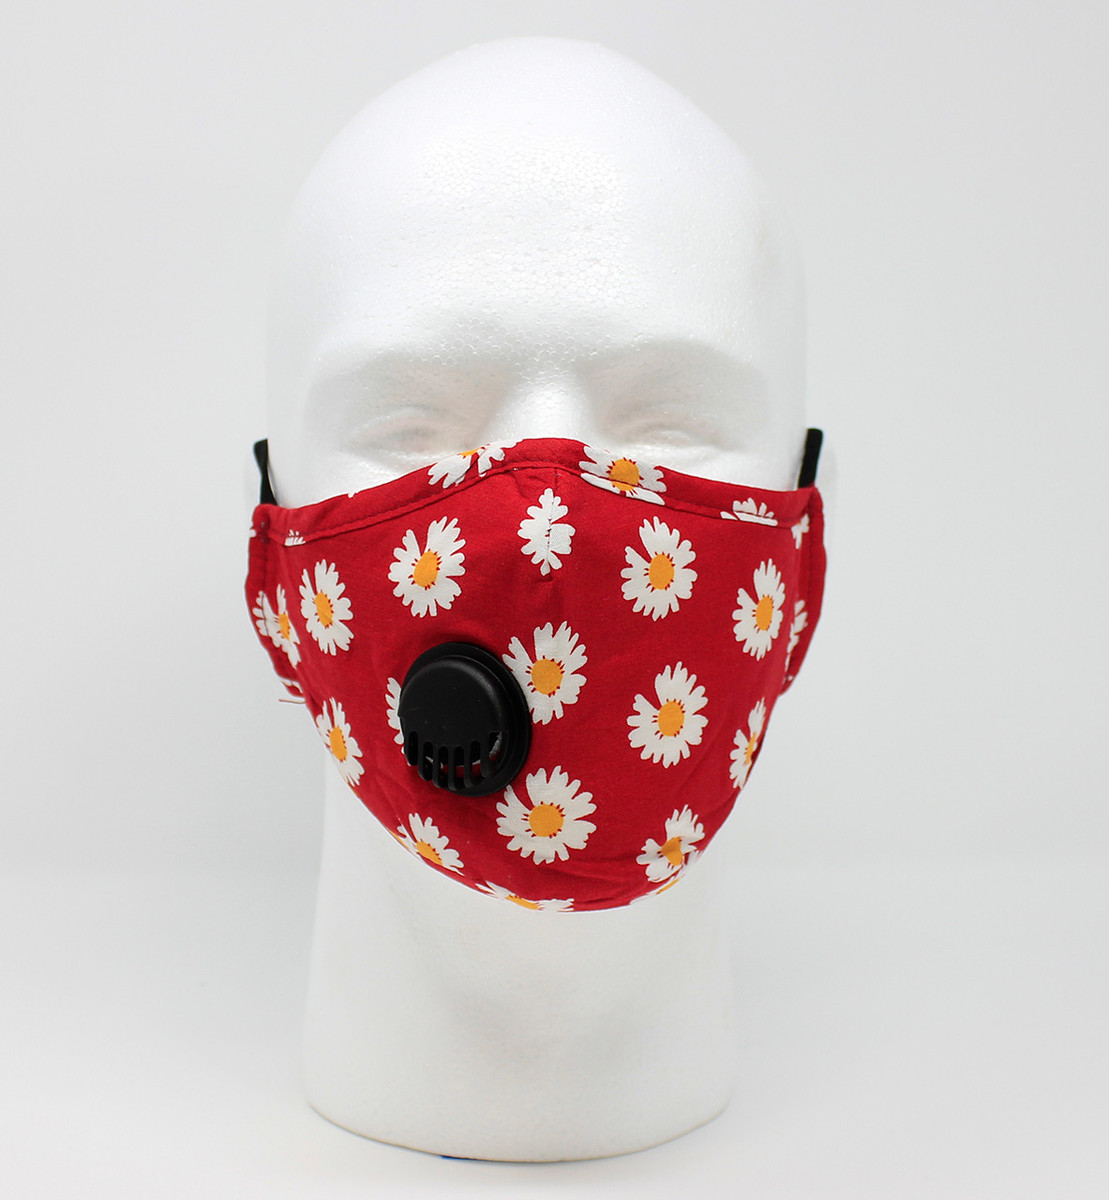 Vented Graphic Fashion Masks - Red/Gold Daisy